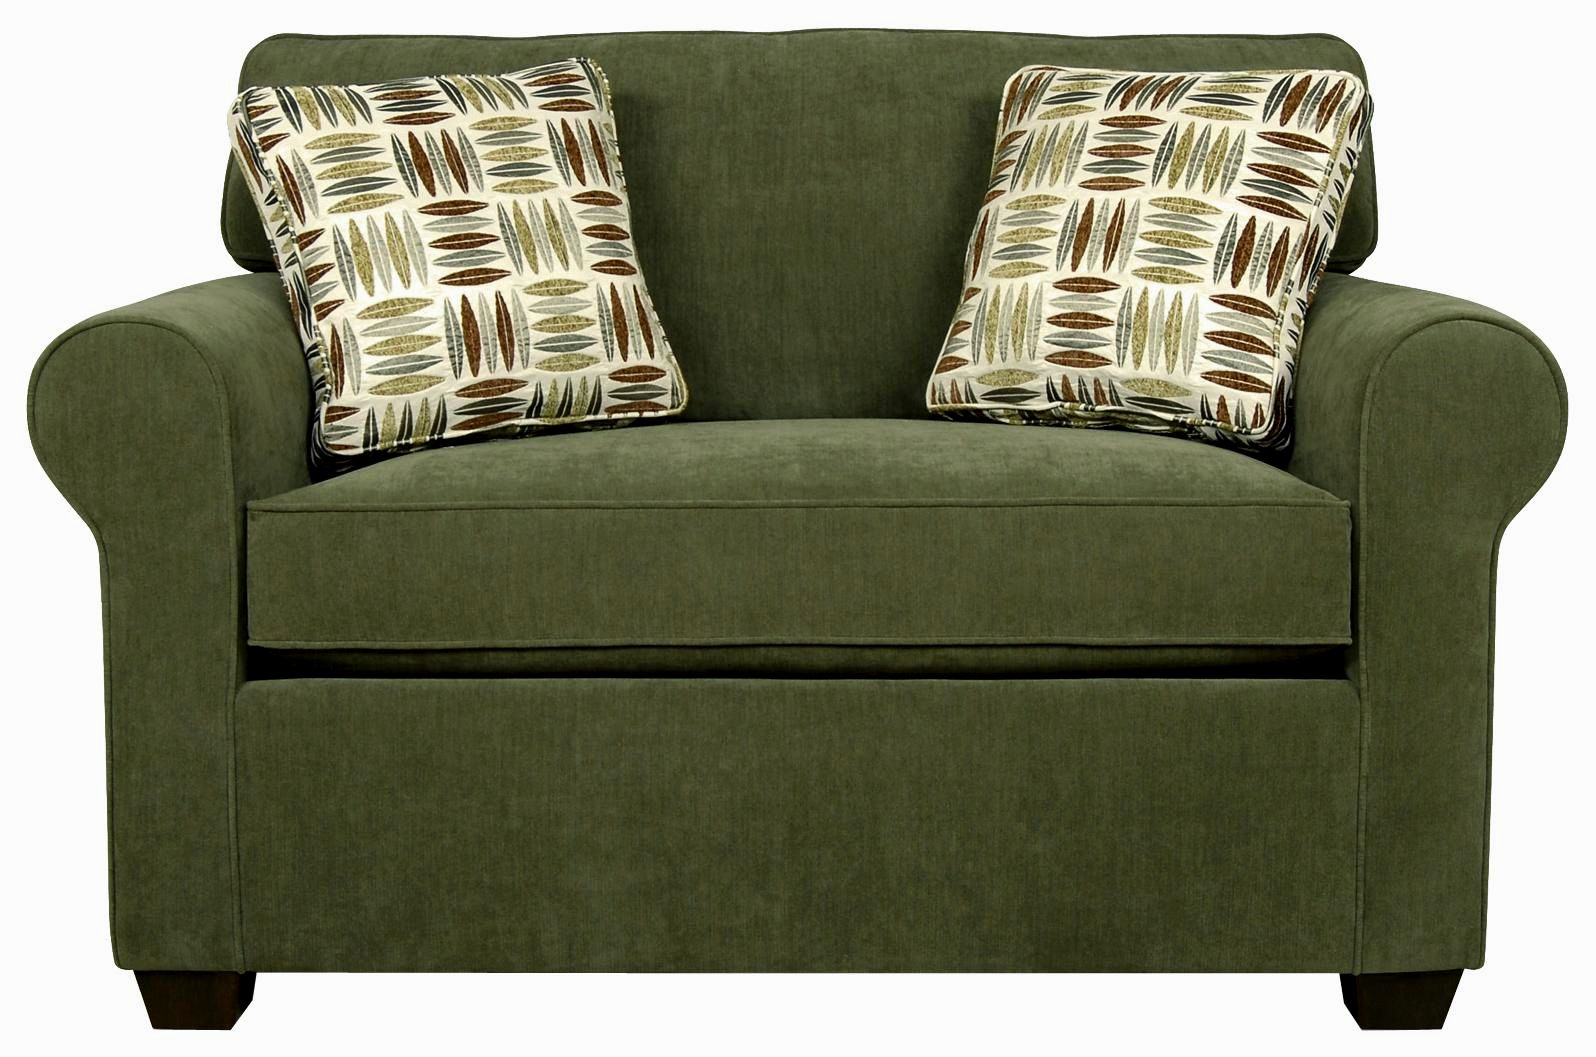 lovely futon sofa sleeper ideas-Contemporary Futon sofa Sleeper Concept